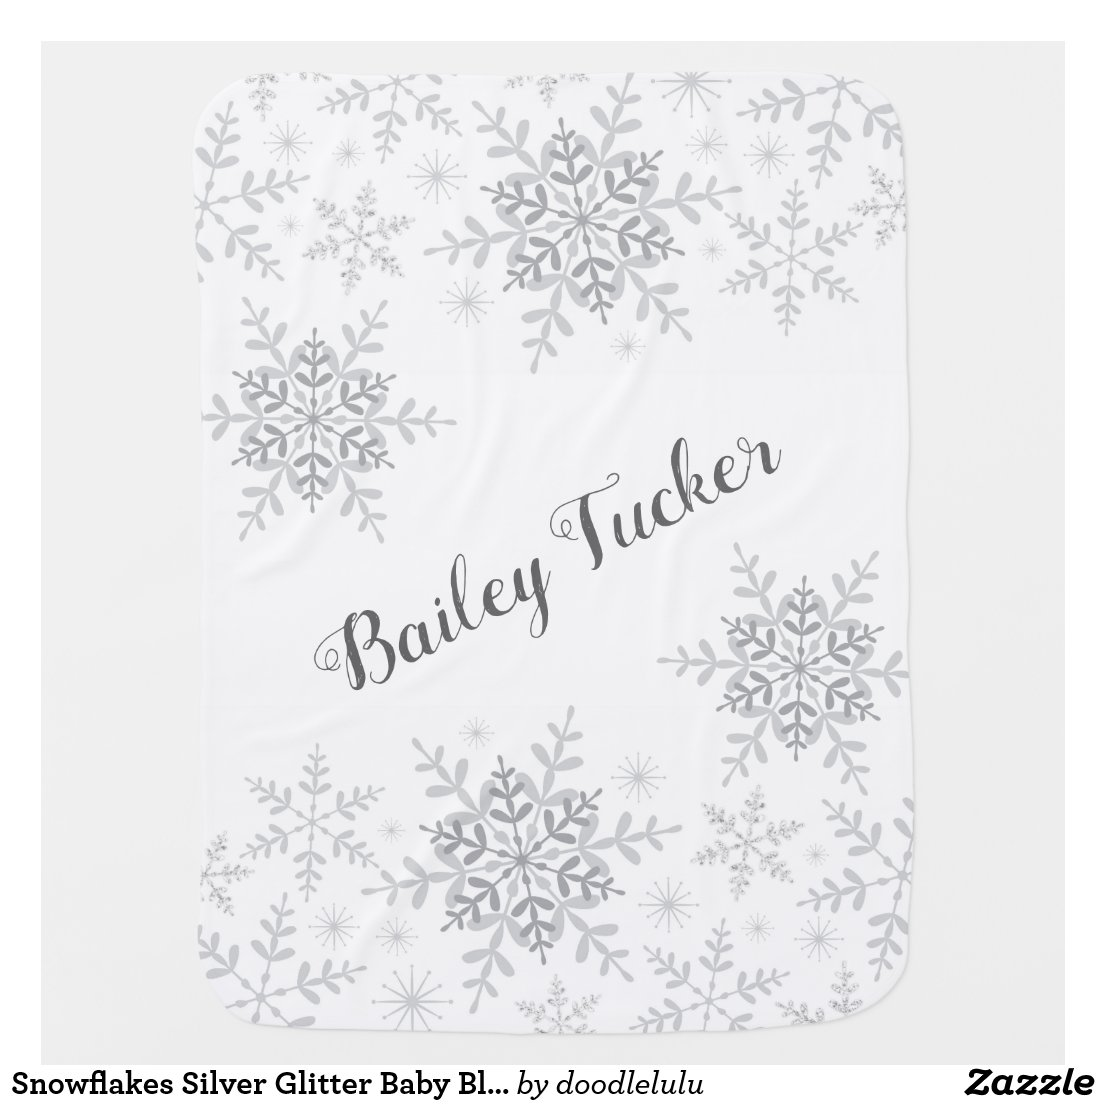 Snowflakes Silver Glitter Baby Blanket